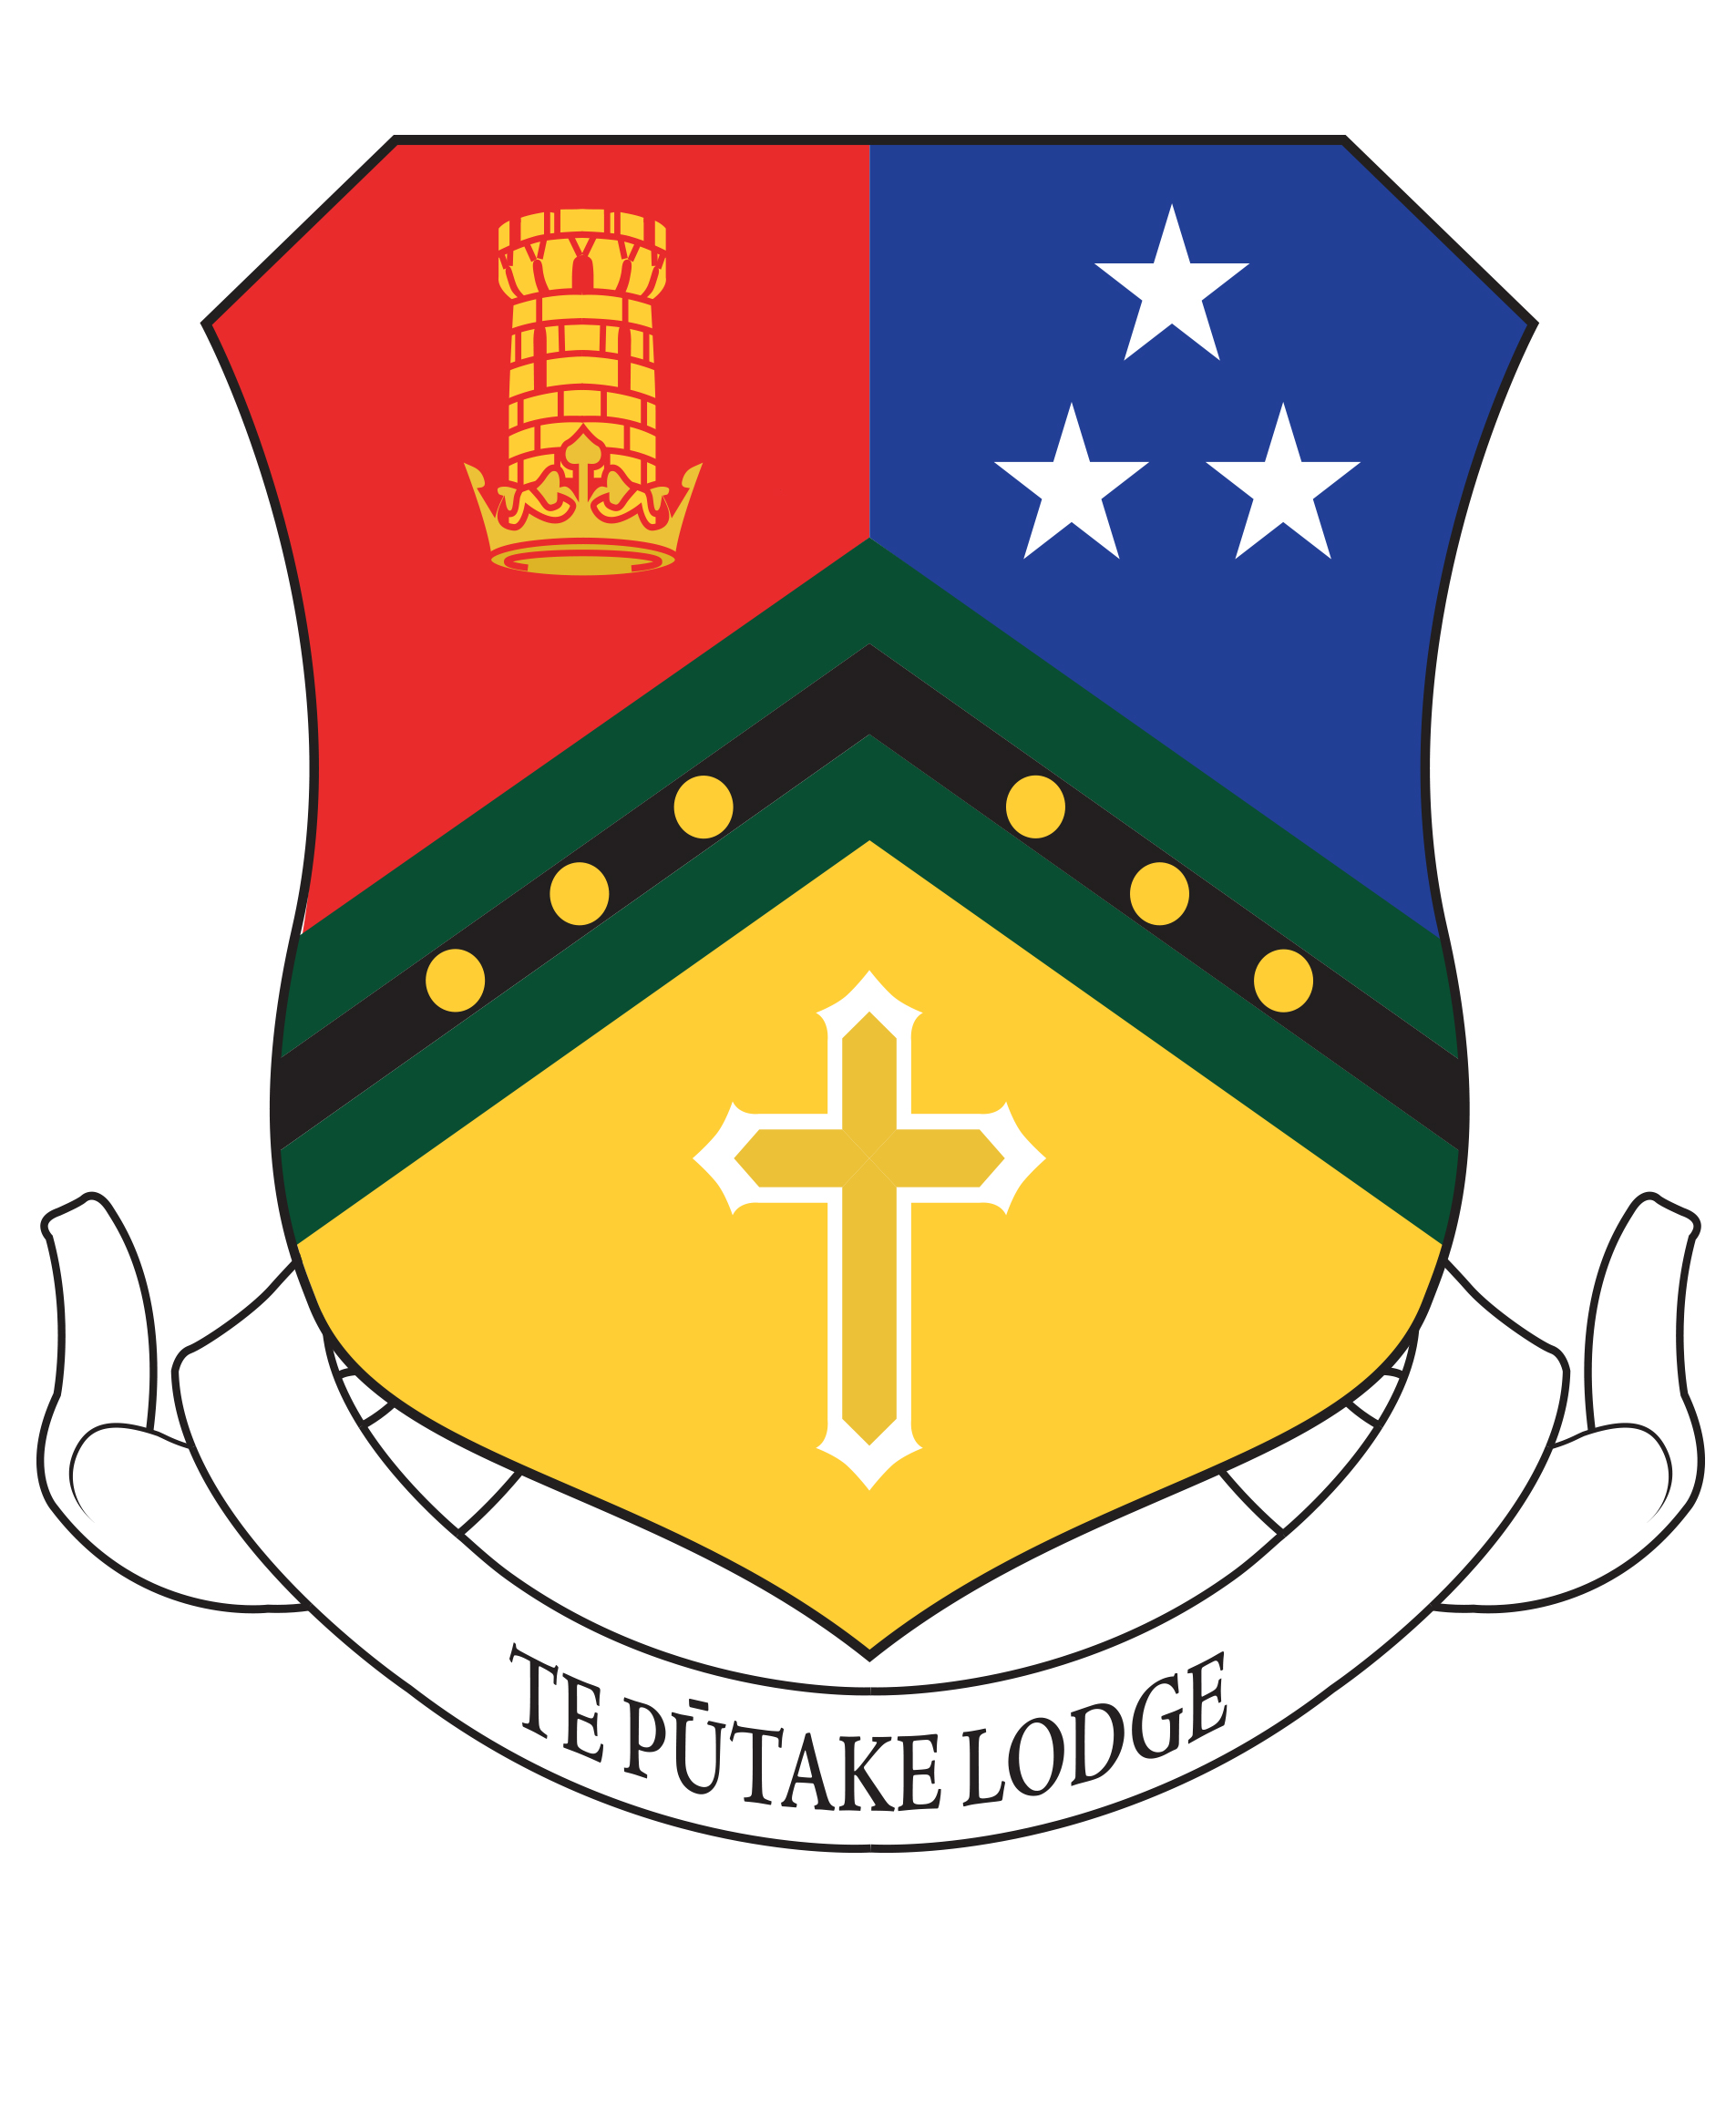 02030112 Our Houses Te Putake Lodge Shield